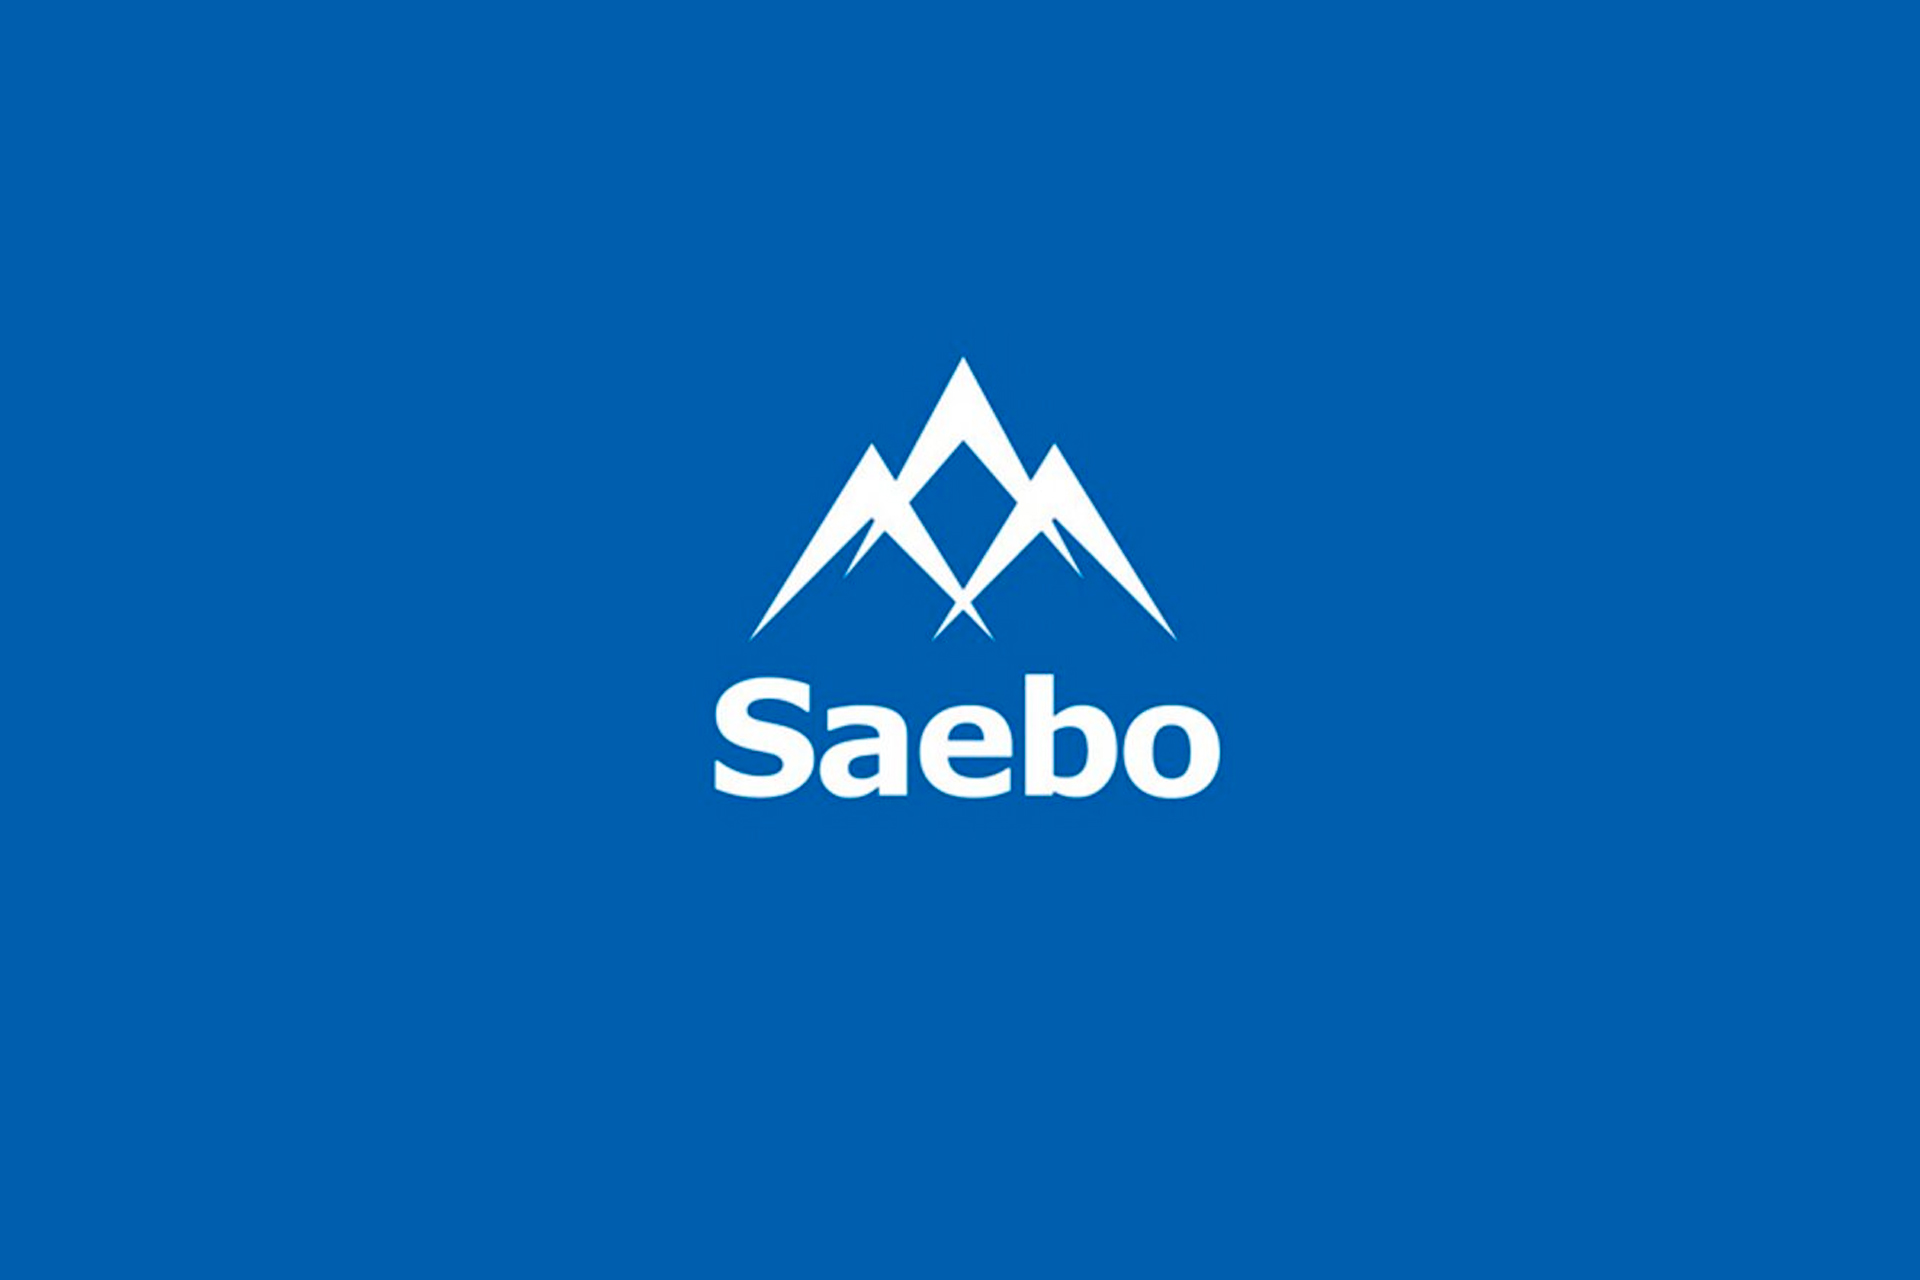 Children's Saebo